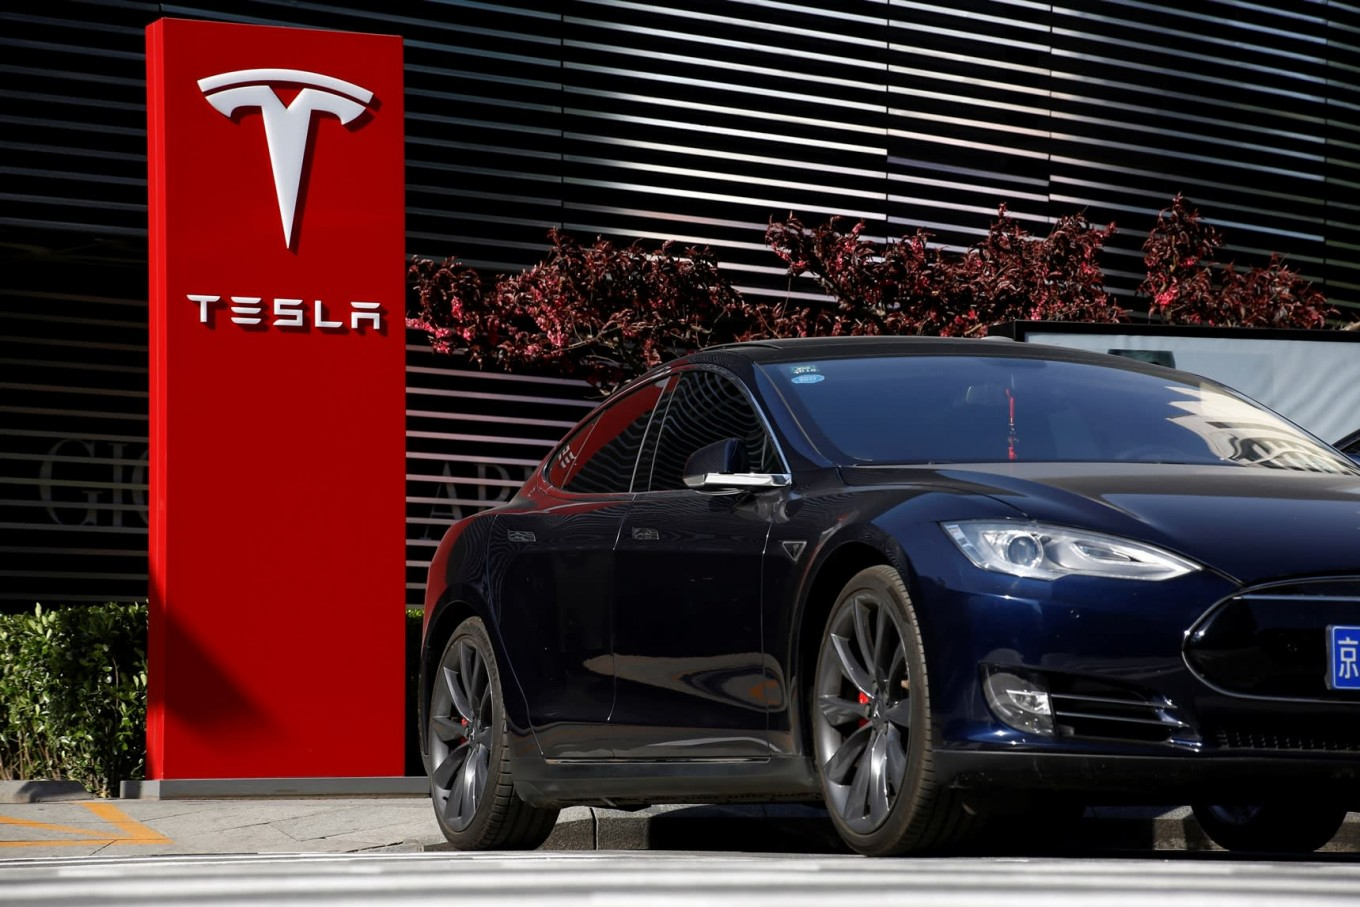 Musk Tesla The Tesla Will Make 500 000 Cars This Year Musk Says Business The